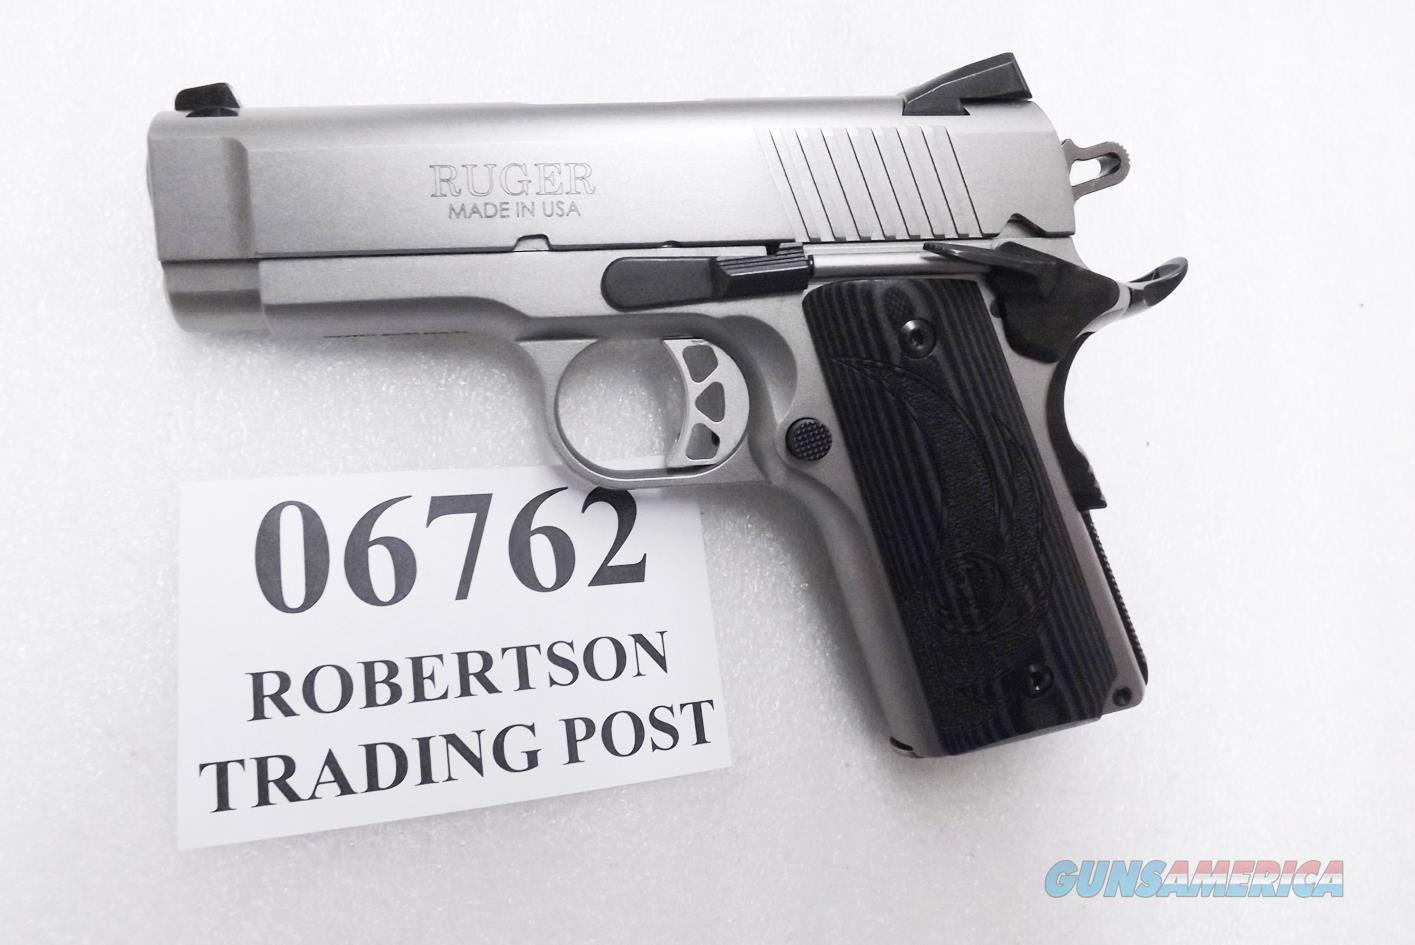 Ruger  45 ACP SR1911 Officer Style Stainless 06762 Steel Frame Excellent in  Box with Papers Officer's ACP / Detonics descendant